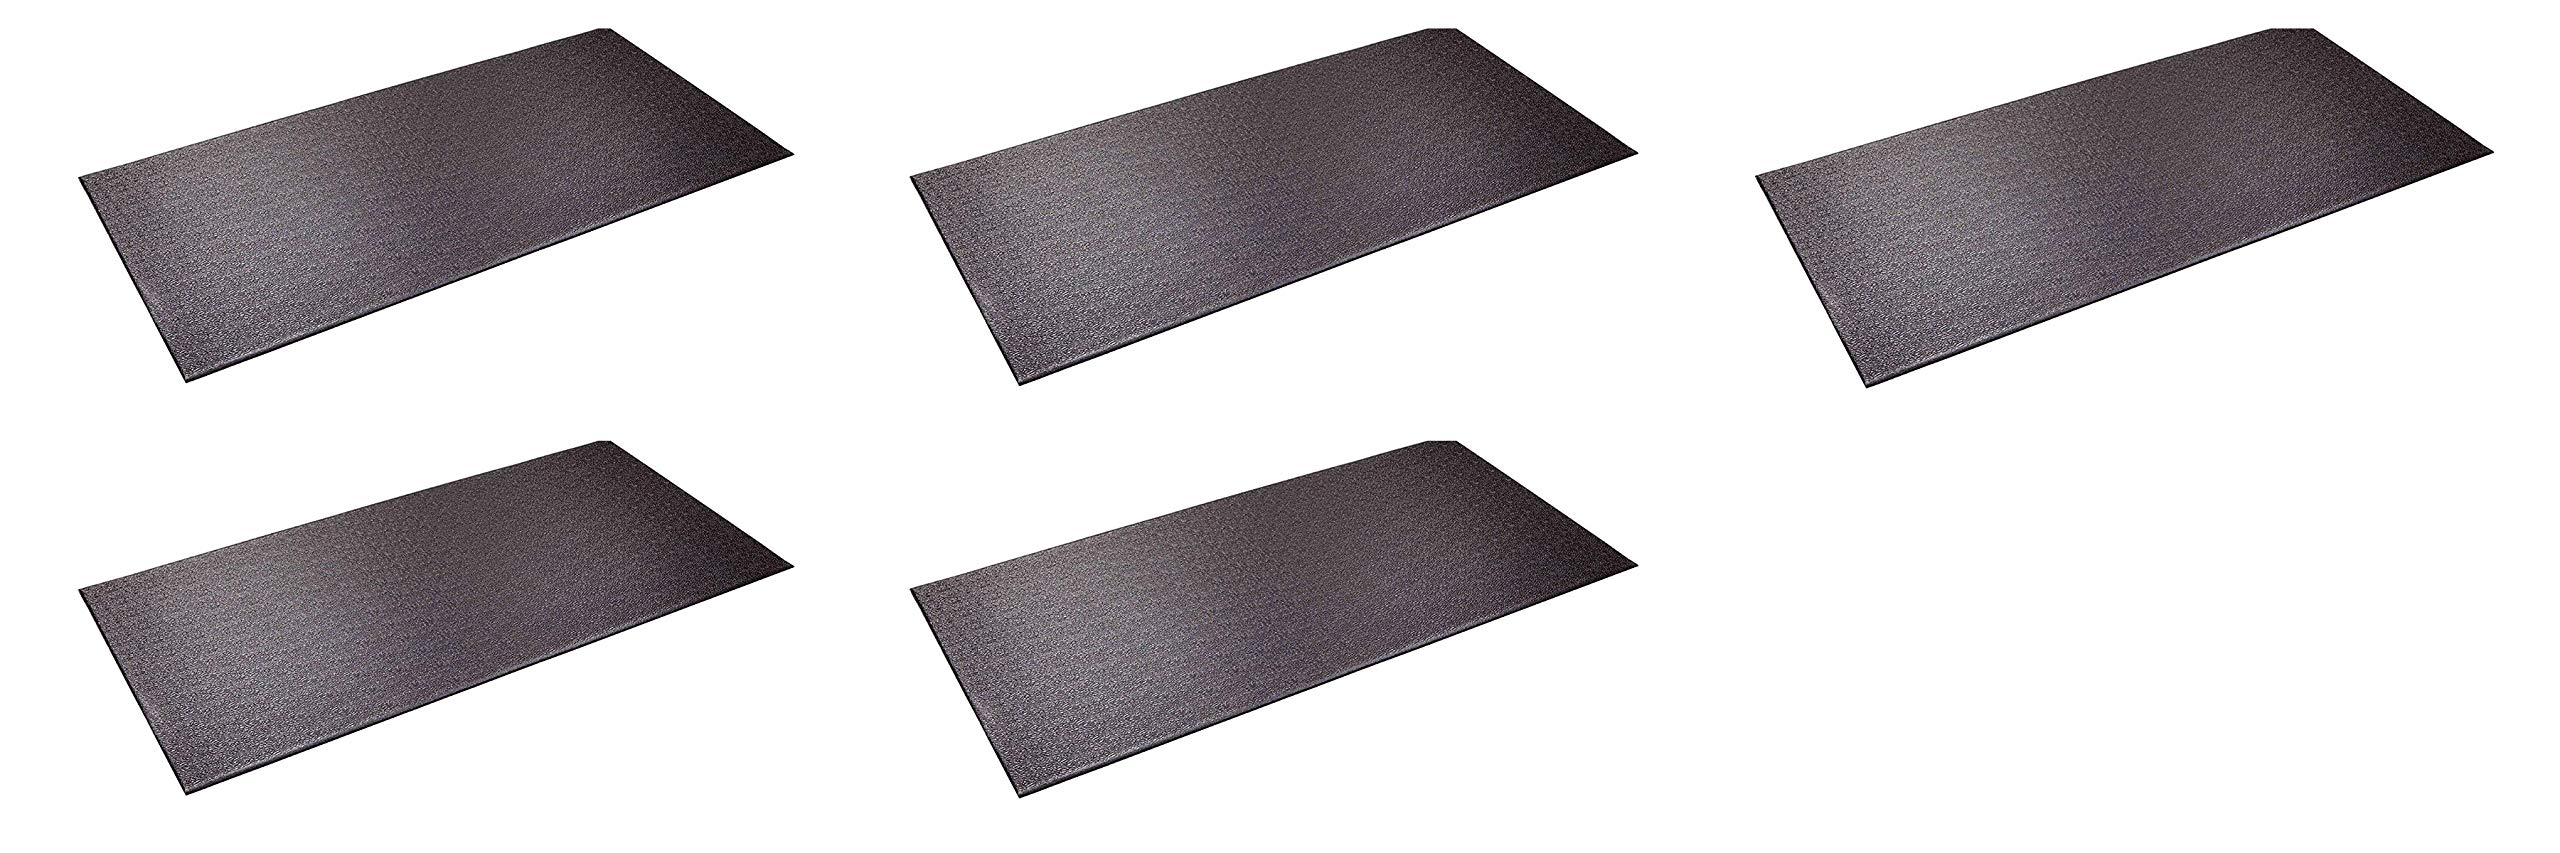 SuperMats Heavy Duty Equipment Mat 13GS Made in U.S.A. for Indoor Cycles Recumbent Bikes Upright Exercise Bikes and Steppers (2.5 Feet x 5 Feet) (30-Inch x 60-Inch) (Fіvе Расk)